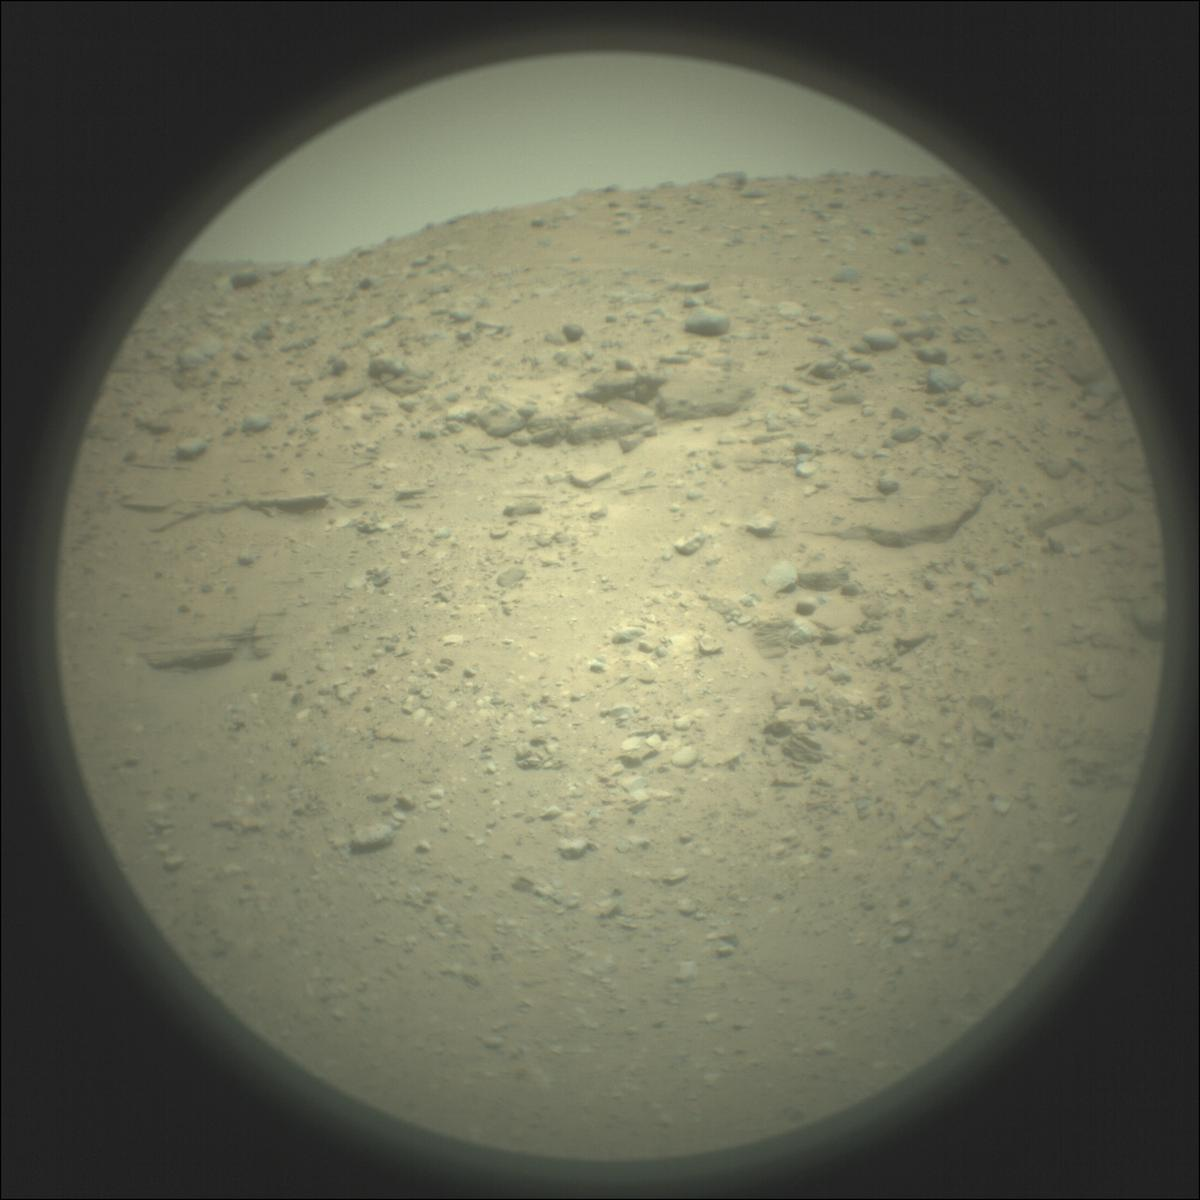 This image was taken by SUPERCAM_RMI onboard NASA's Mars rover Perseverance on Sol 26